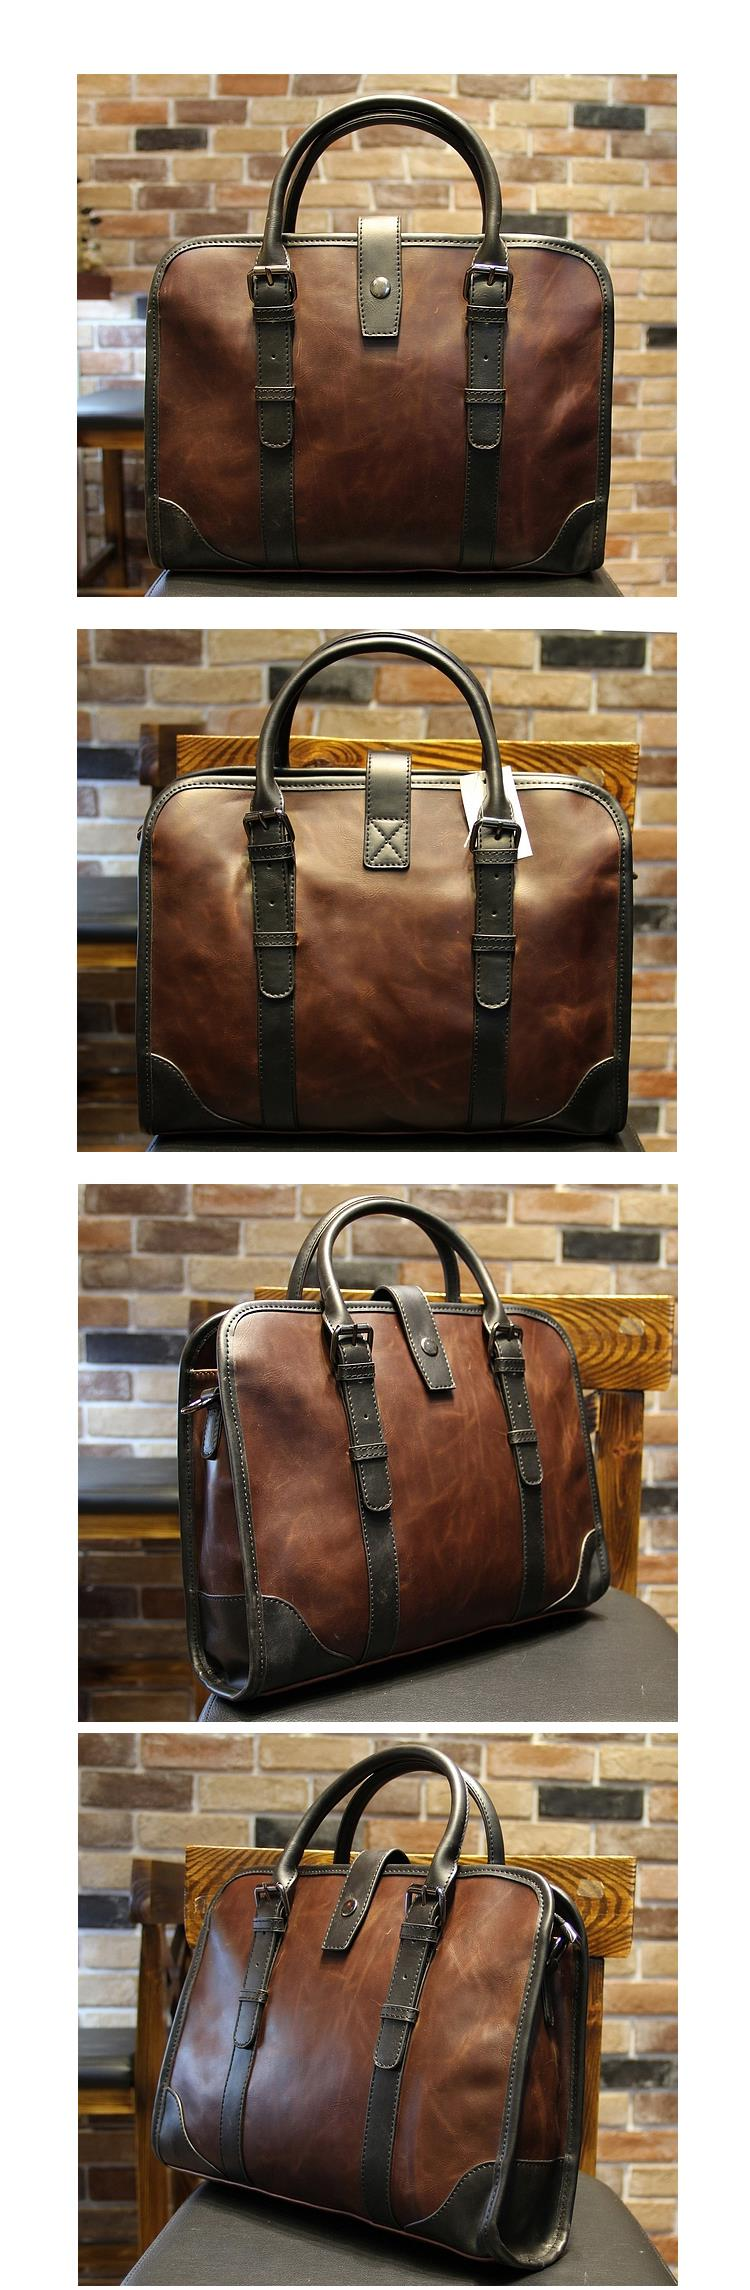 09ba84fe40b ... Bag High Quality Real Leather Men Fashion Business Portfolio Messenger  Bags. aeProduct.getSubject(). aeProduct.getSubject(). aeProduct.getSubject()